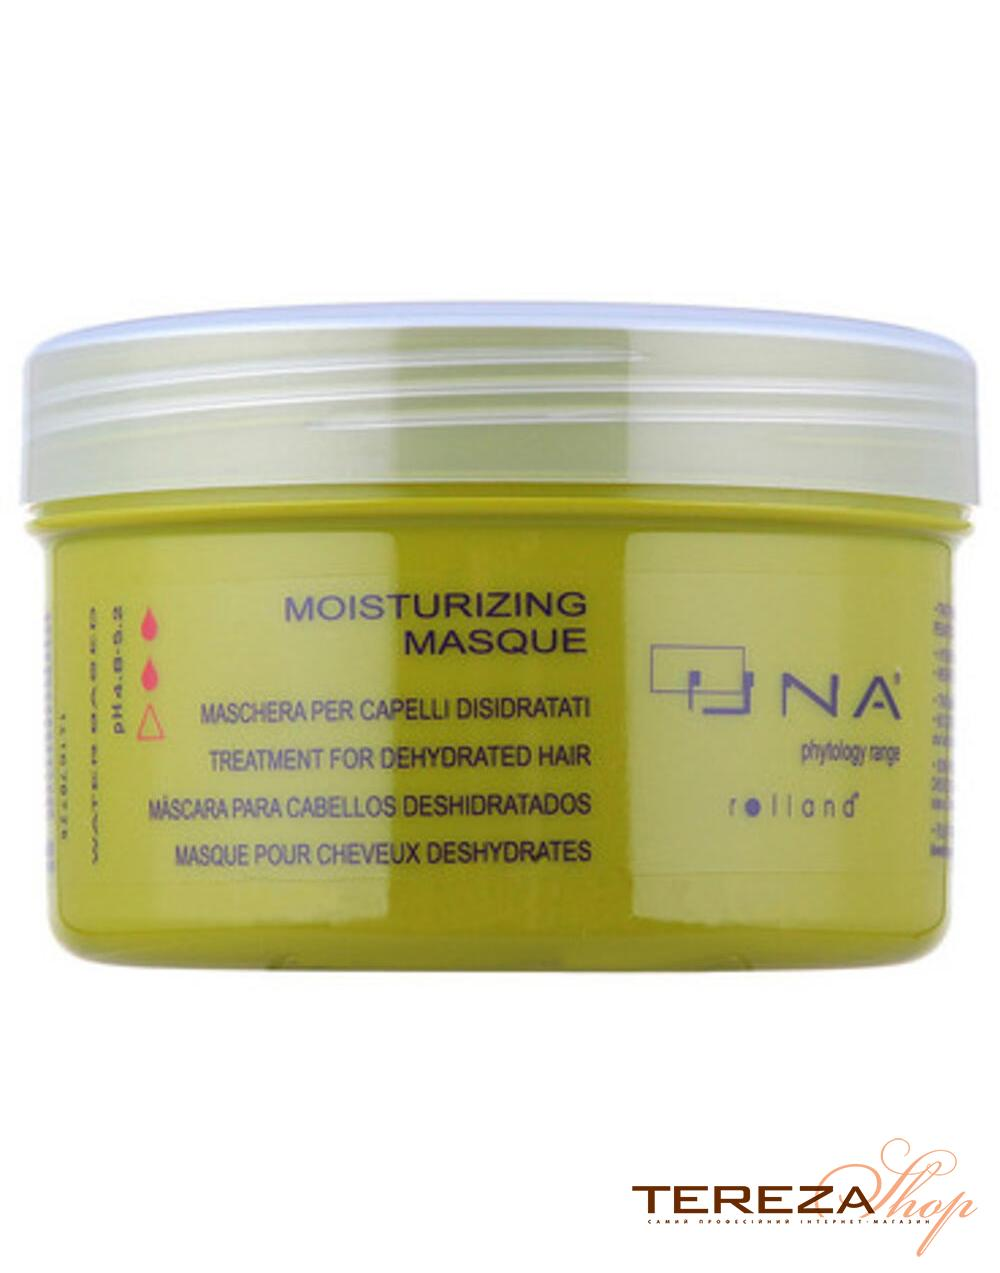 MOISTURIZING MASK 500ml ROLLAND UNA | Tereza Shop